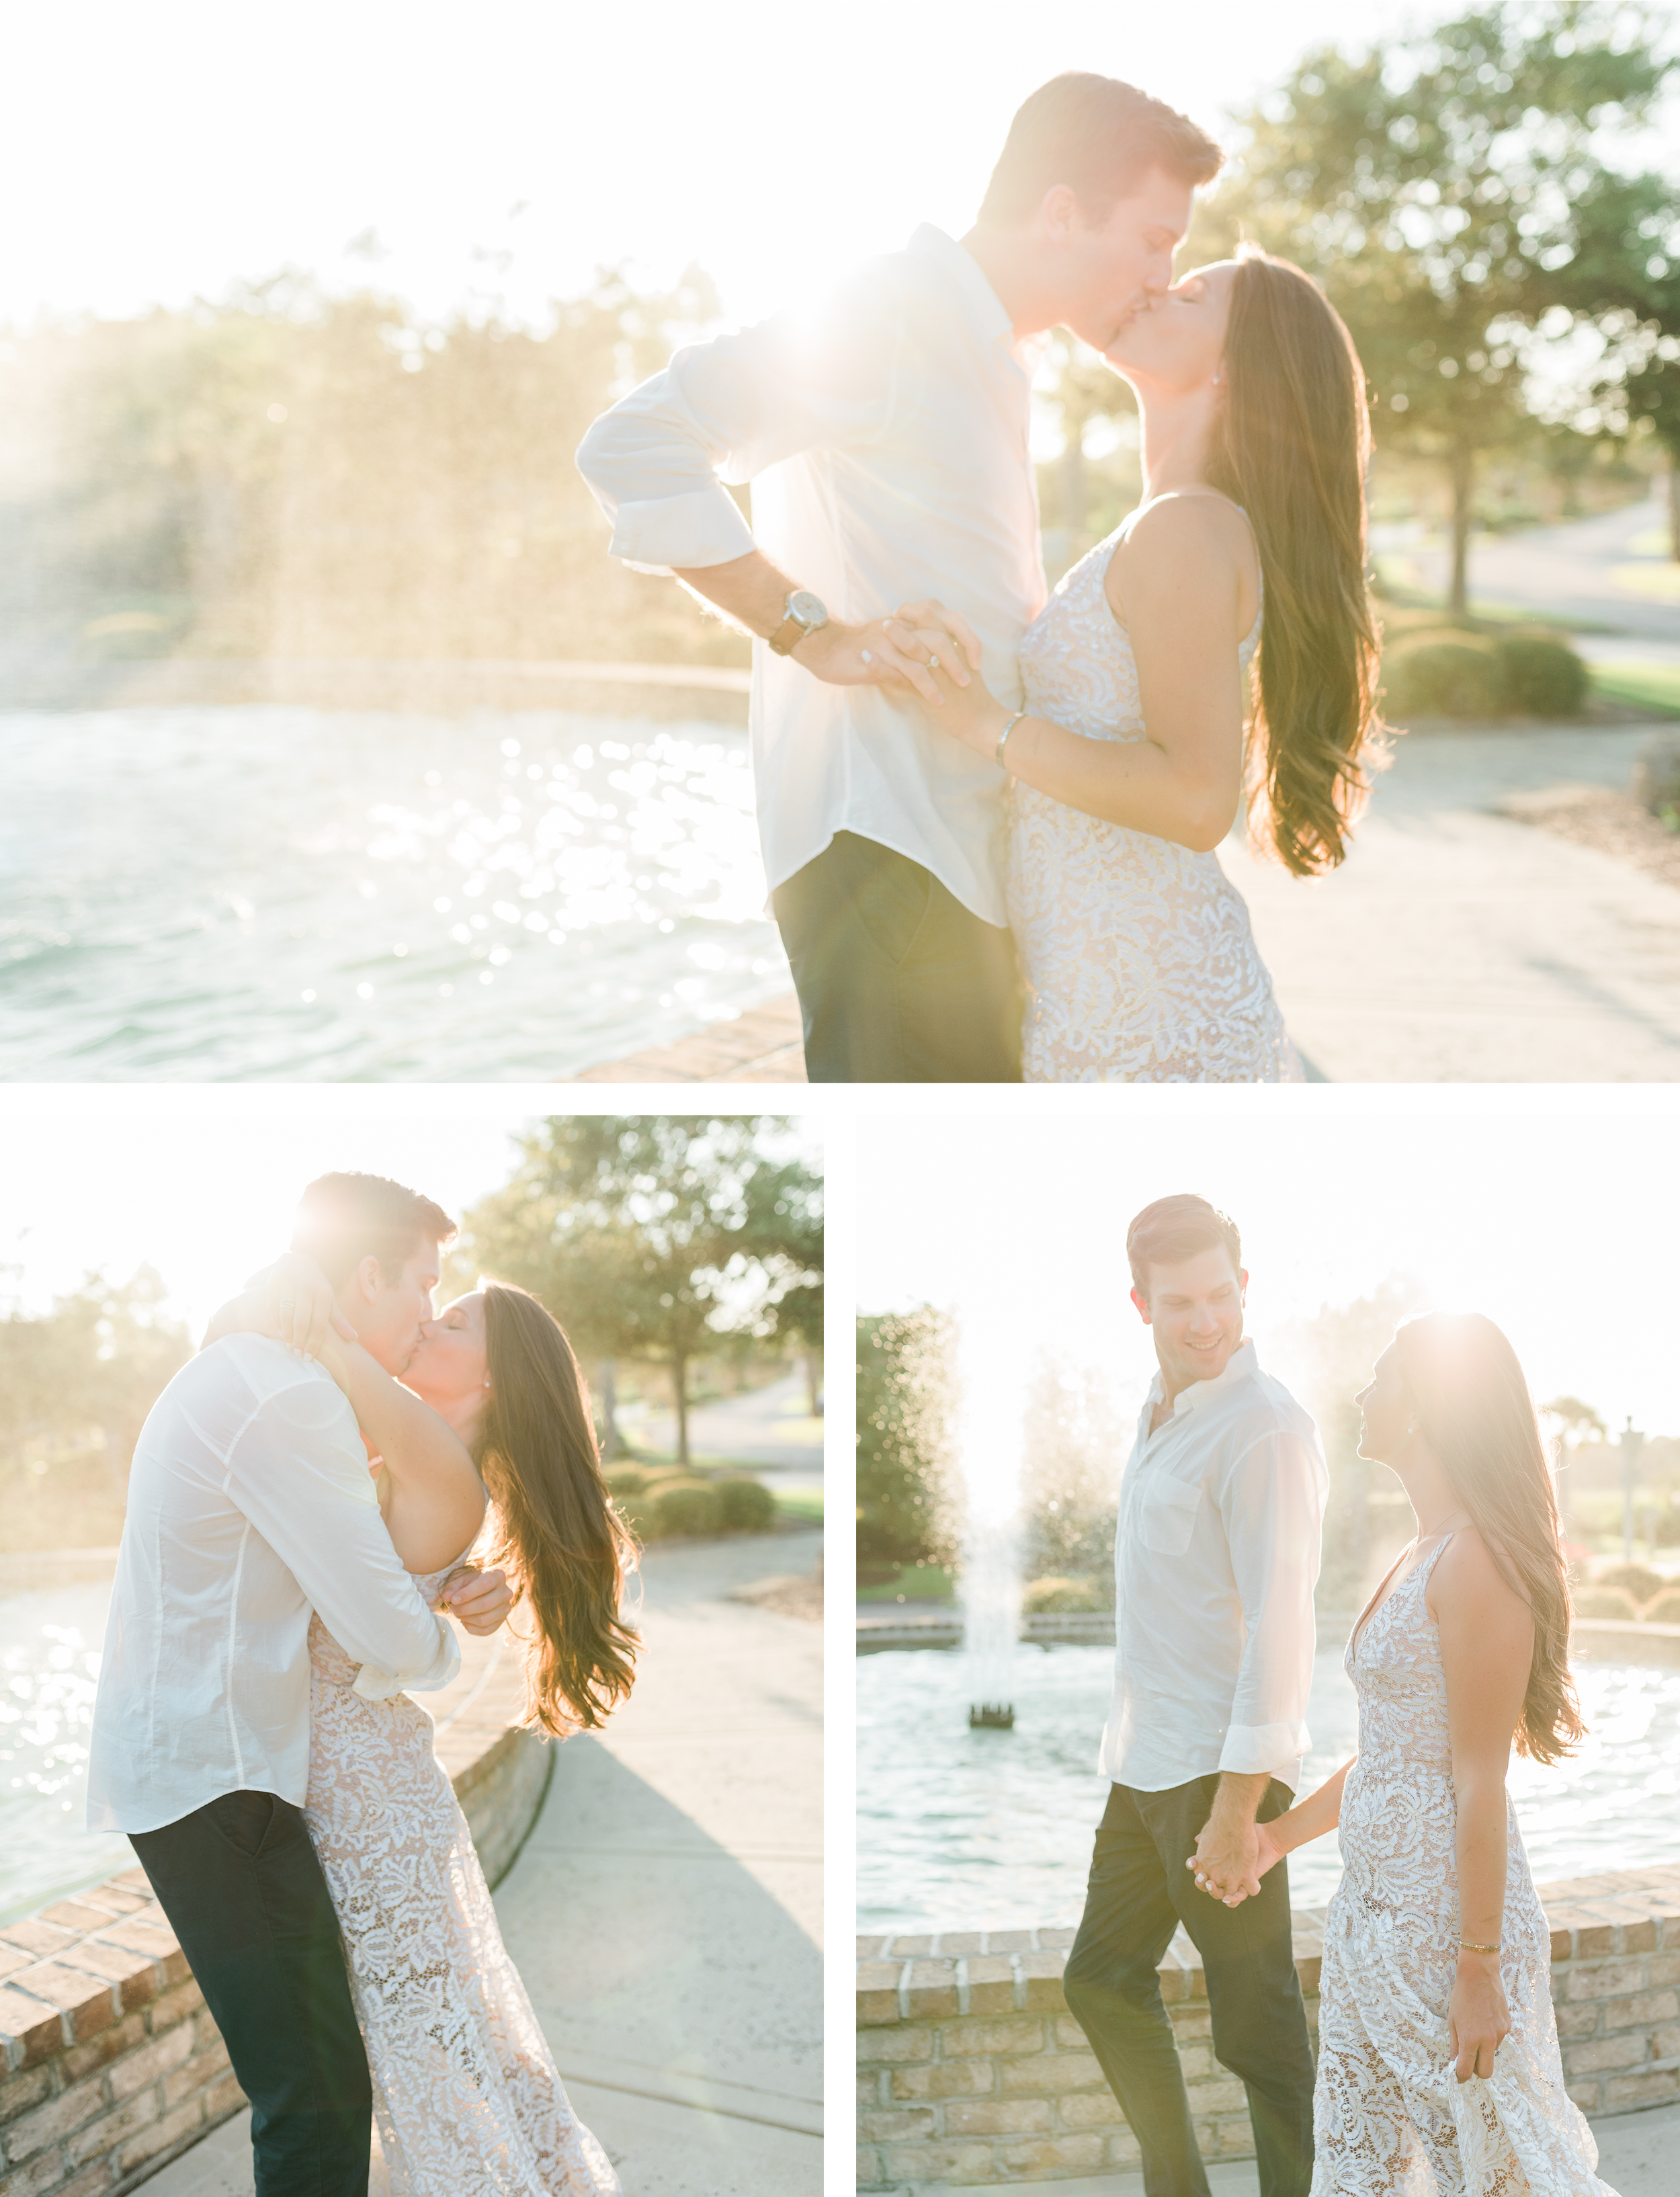 Evan Haley Engagement_Pawleys Island SC_Kristen Paige Photography_Gallery 8.png